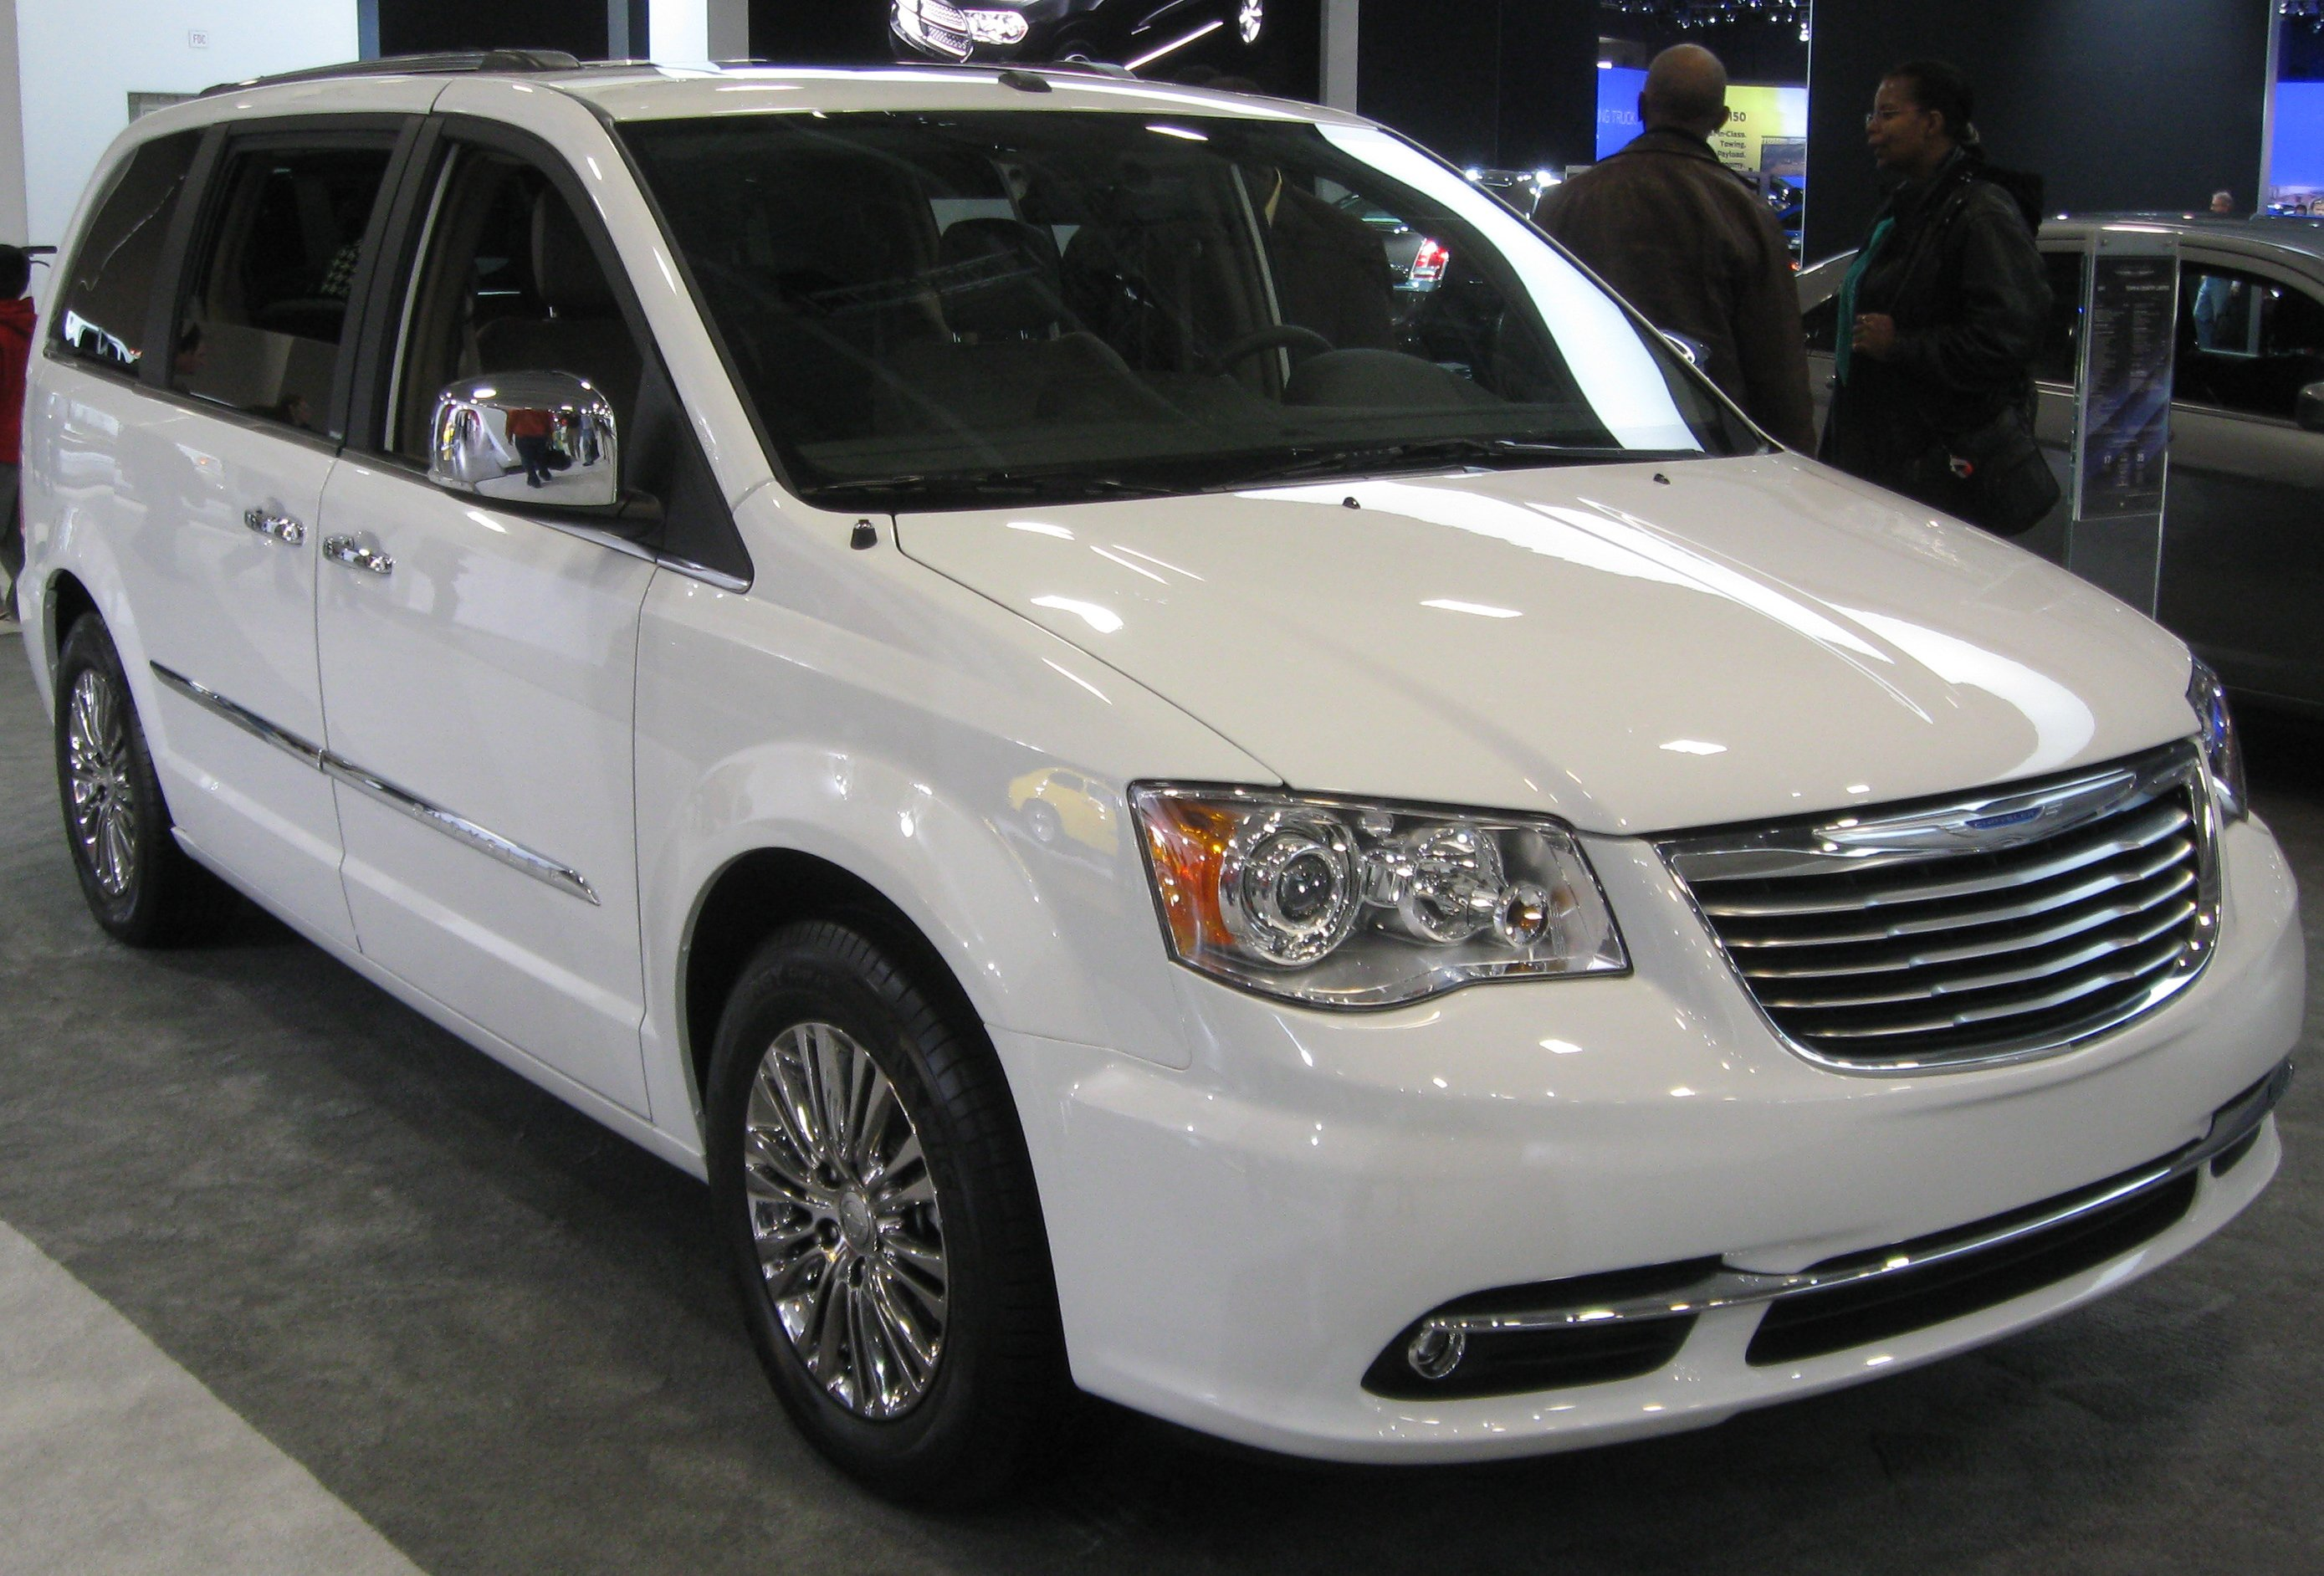 chrysler town & country #14